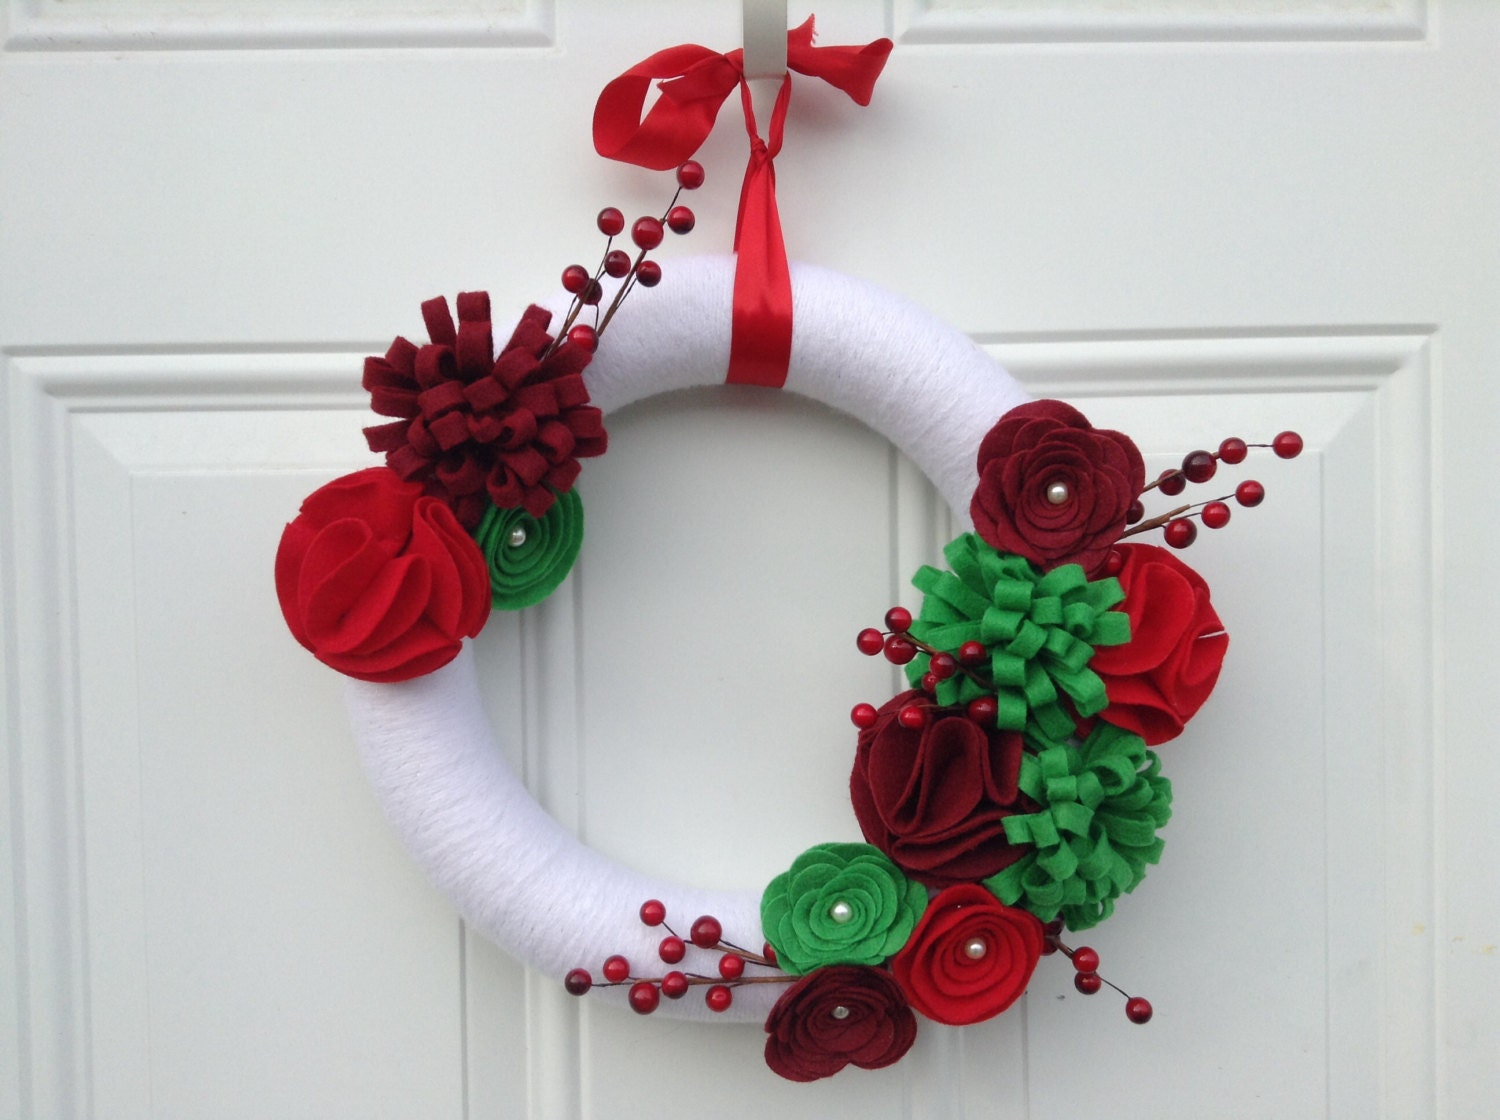 Christmas Wreath, Yarn Wreath, red, white and green Felt Flowers, Floral Wreath, Winter Wreath, holiday Wreath 12 inches - AnitaRexDesigns